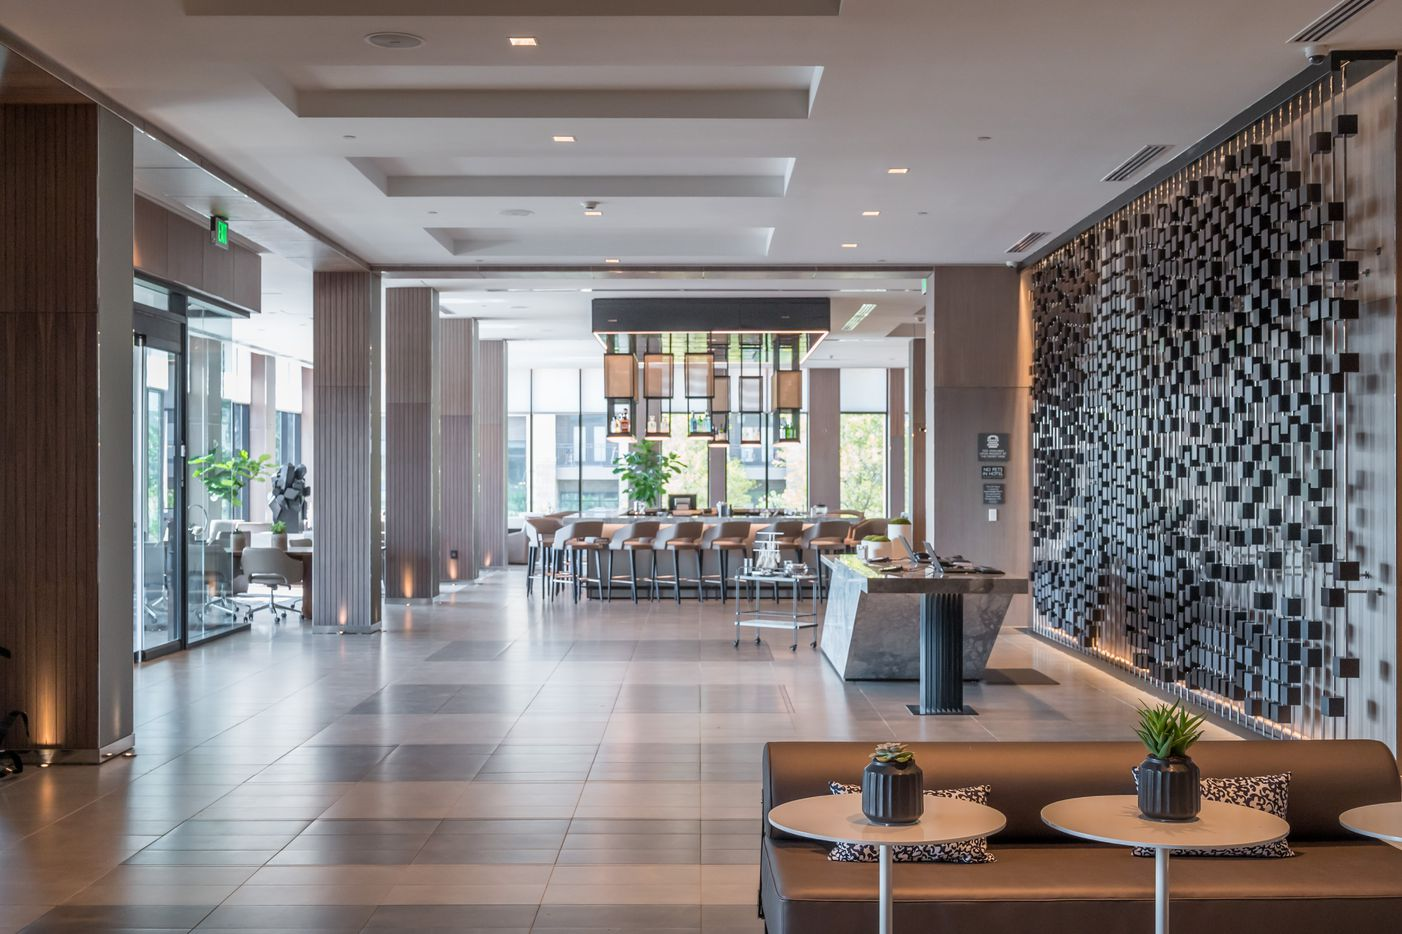 The new AC Hotel in Frisco Station opened last month.